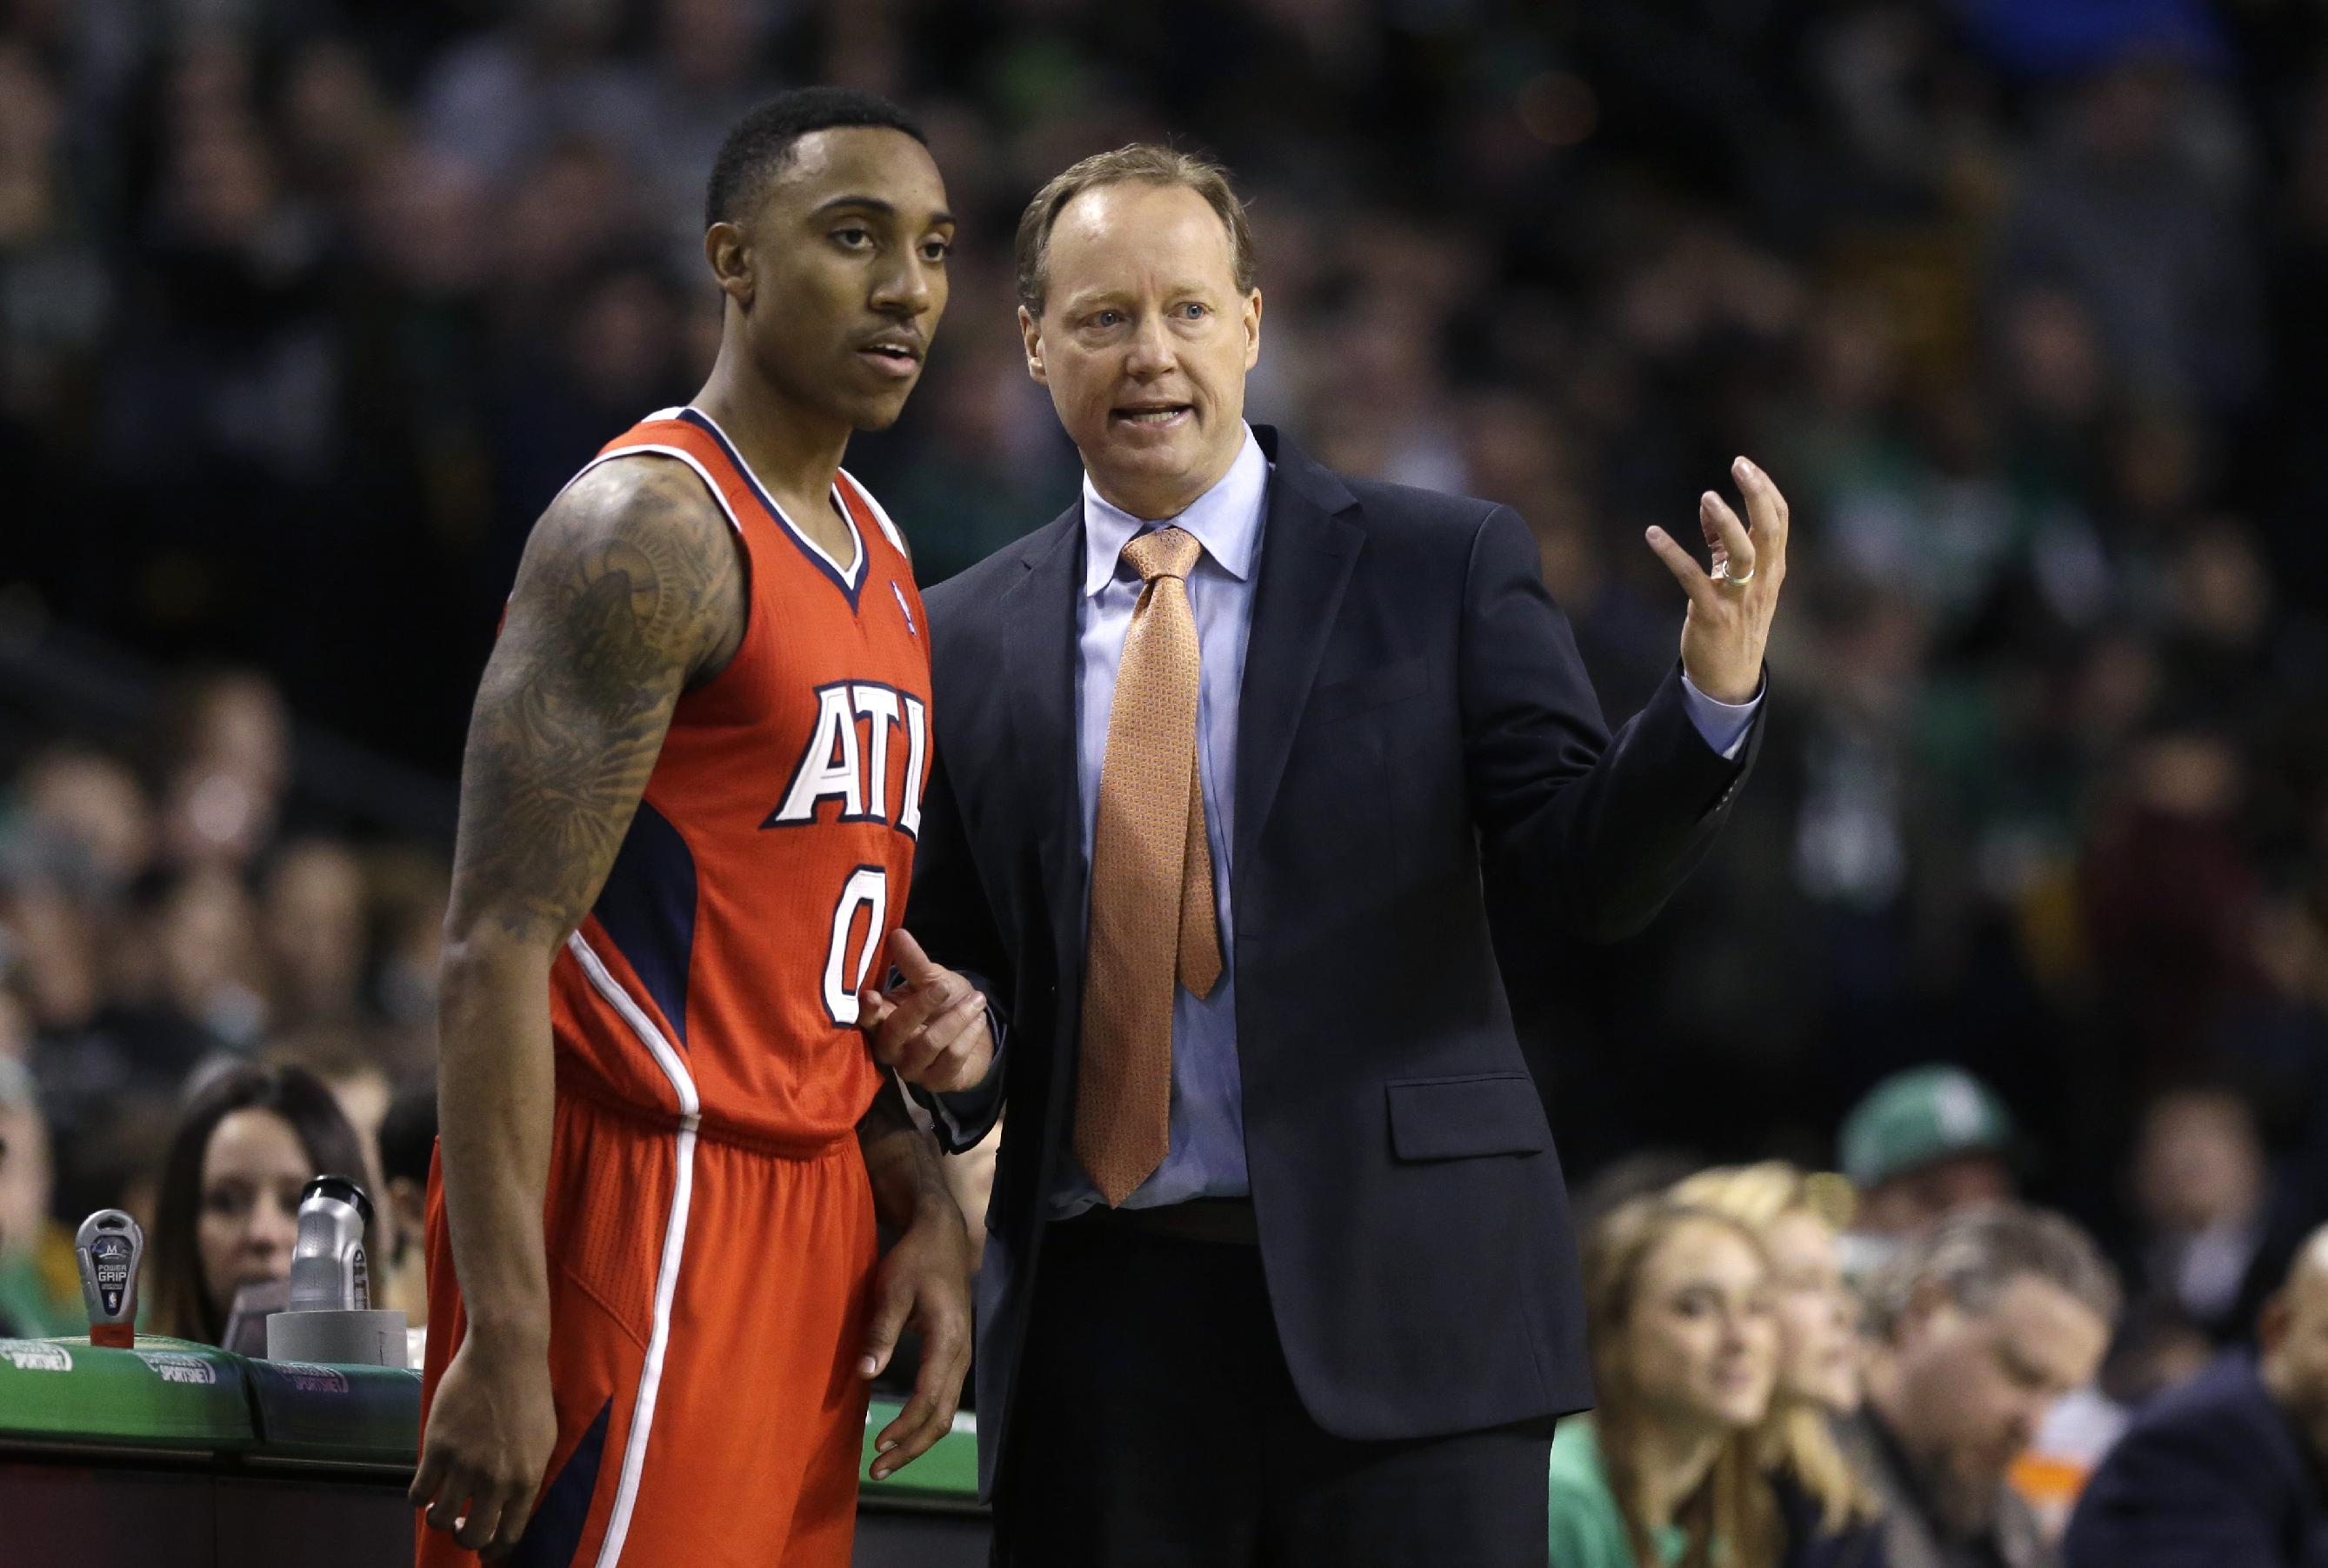 Hawks' Jeff Teague couldn't hear for a while due to 'a consider…